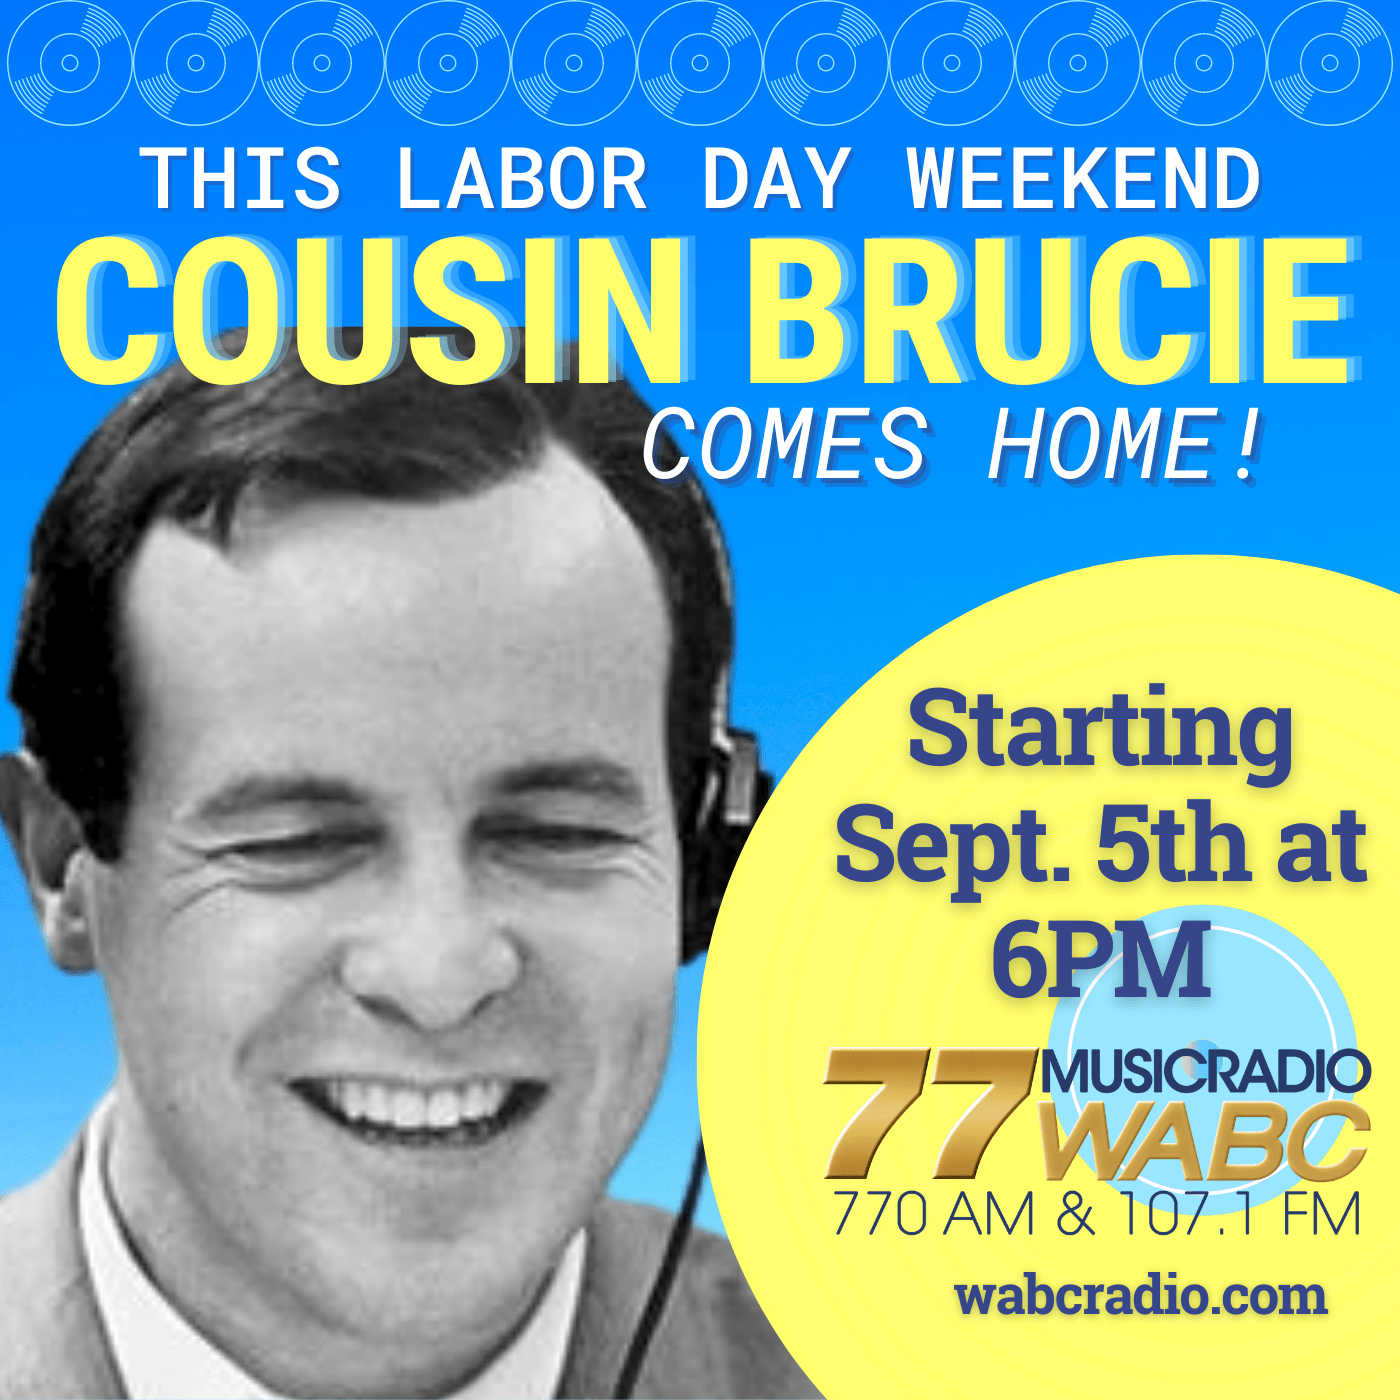 https://dehayf5mhw1h7.cloudfront.net/wp-content/uploads/sites/957/2020/08/25014353/CousinBrucie_LaborDay_1400.png